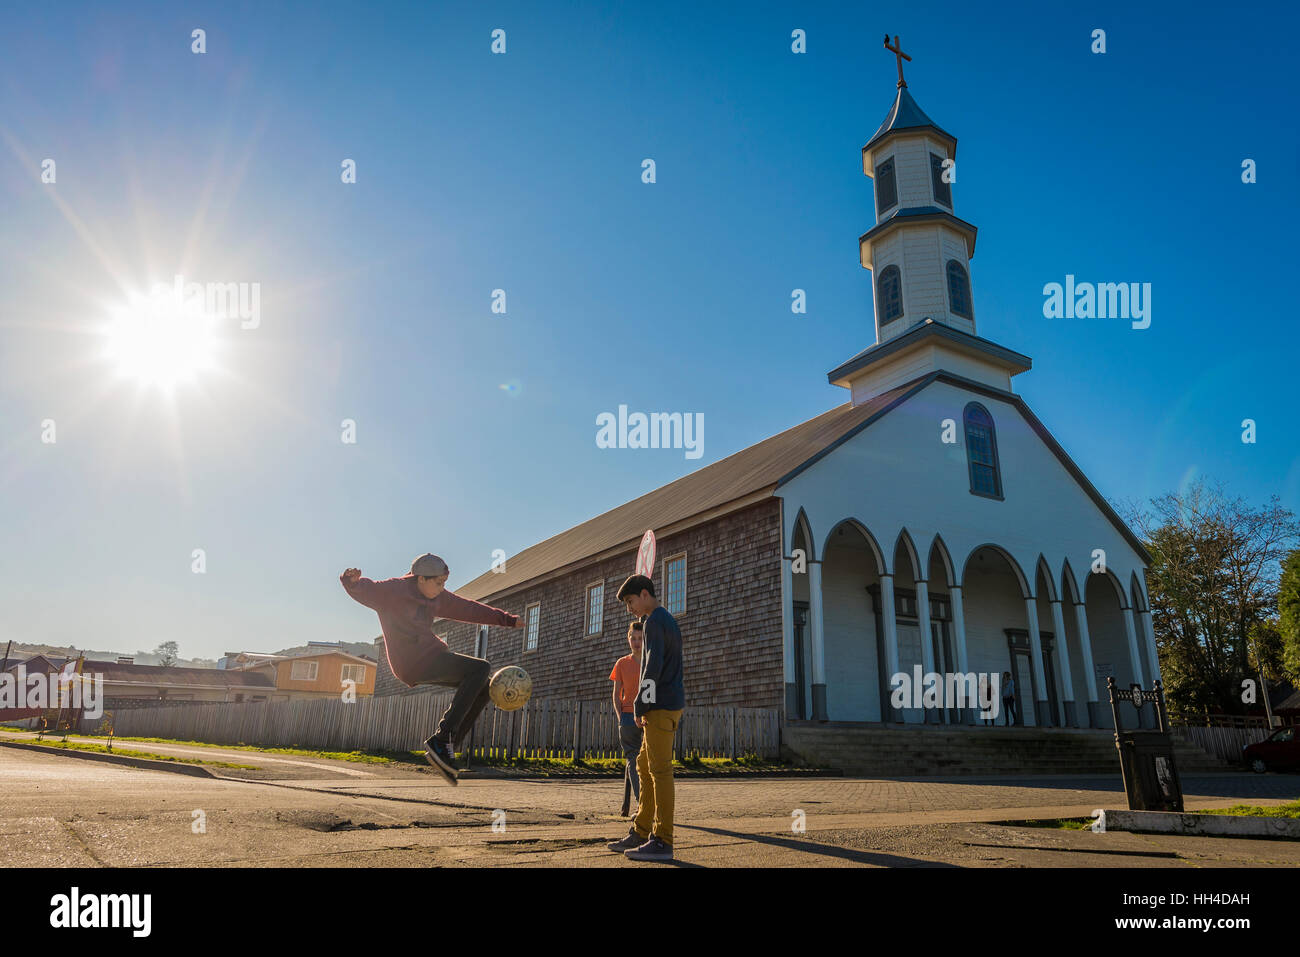 Big island of Chiloé. The lakes, Chile. Dalcahue church. churches of chiloe - Stock Image